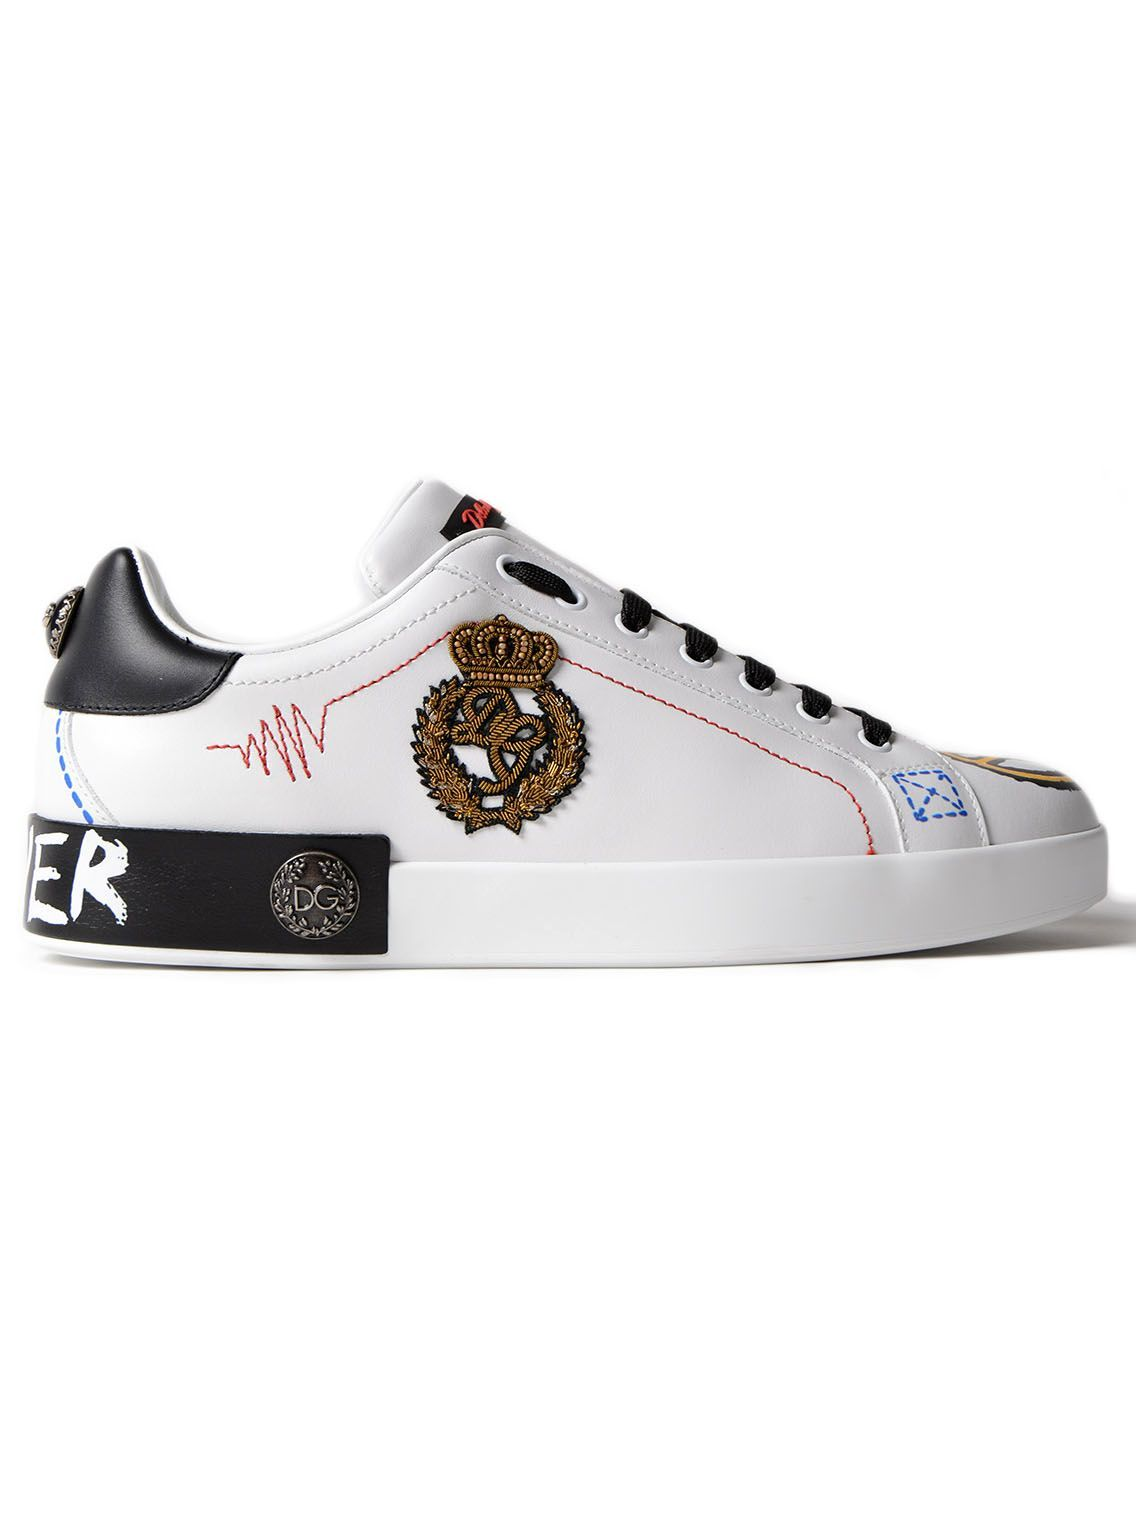 Dolce & Gabbana Low top logo trainers buy cheap price cheap sale pre order quality from china wholesale free shipping pictures popular sale online qRnWfHq